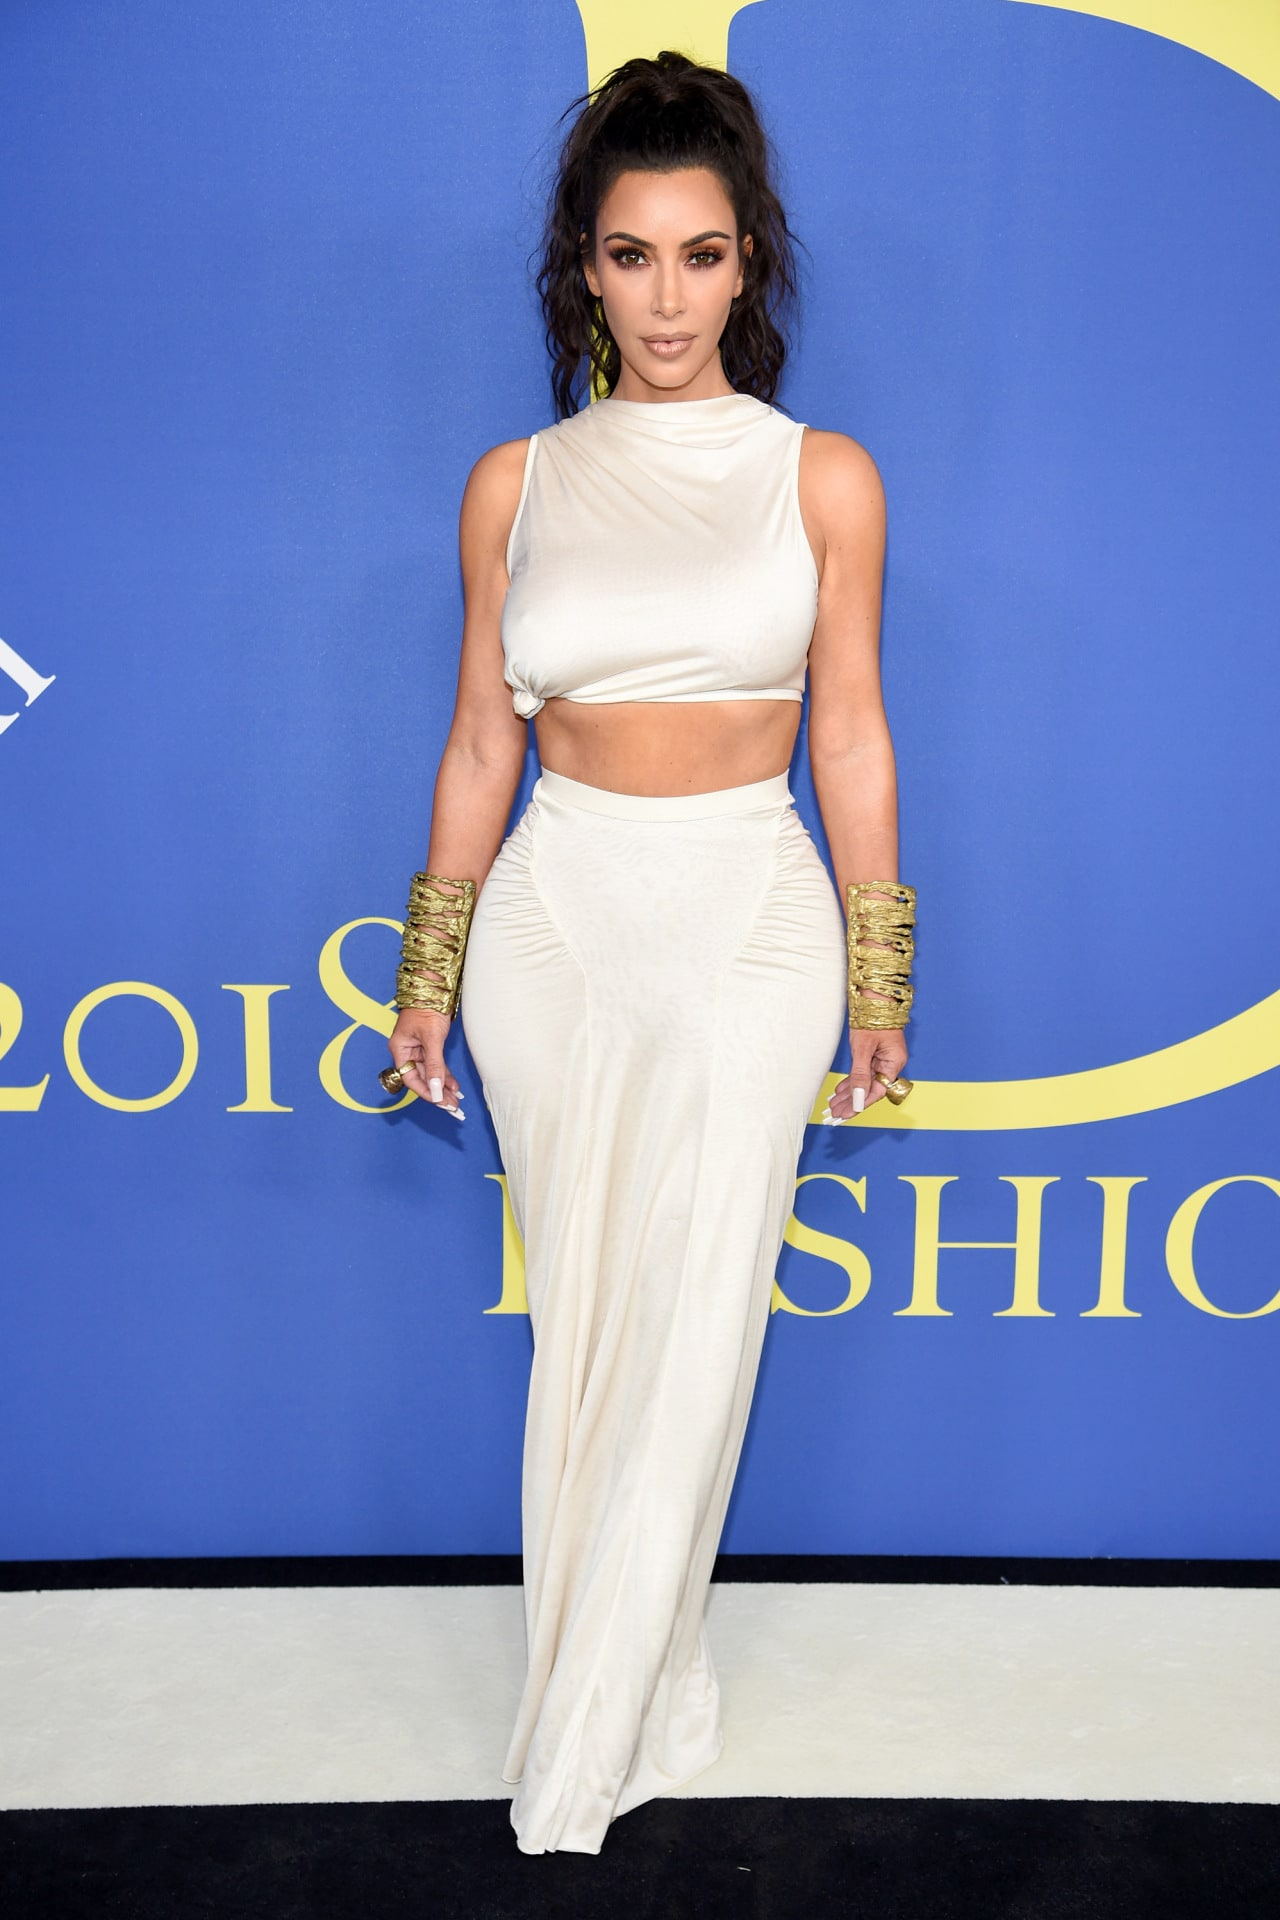 Cfda at the fashion awards pictures